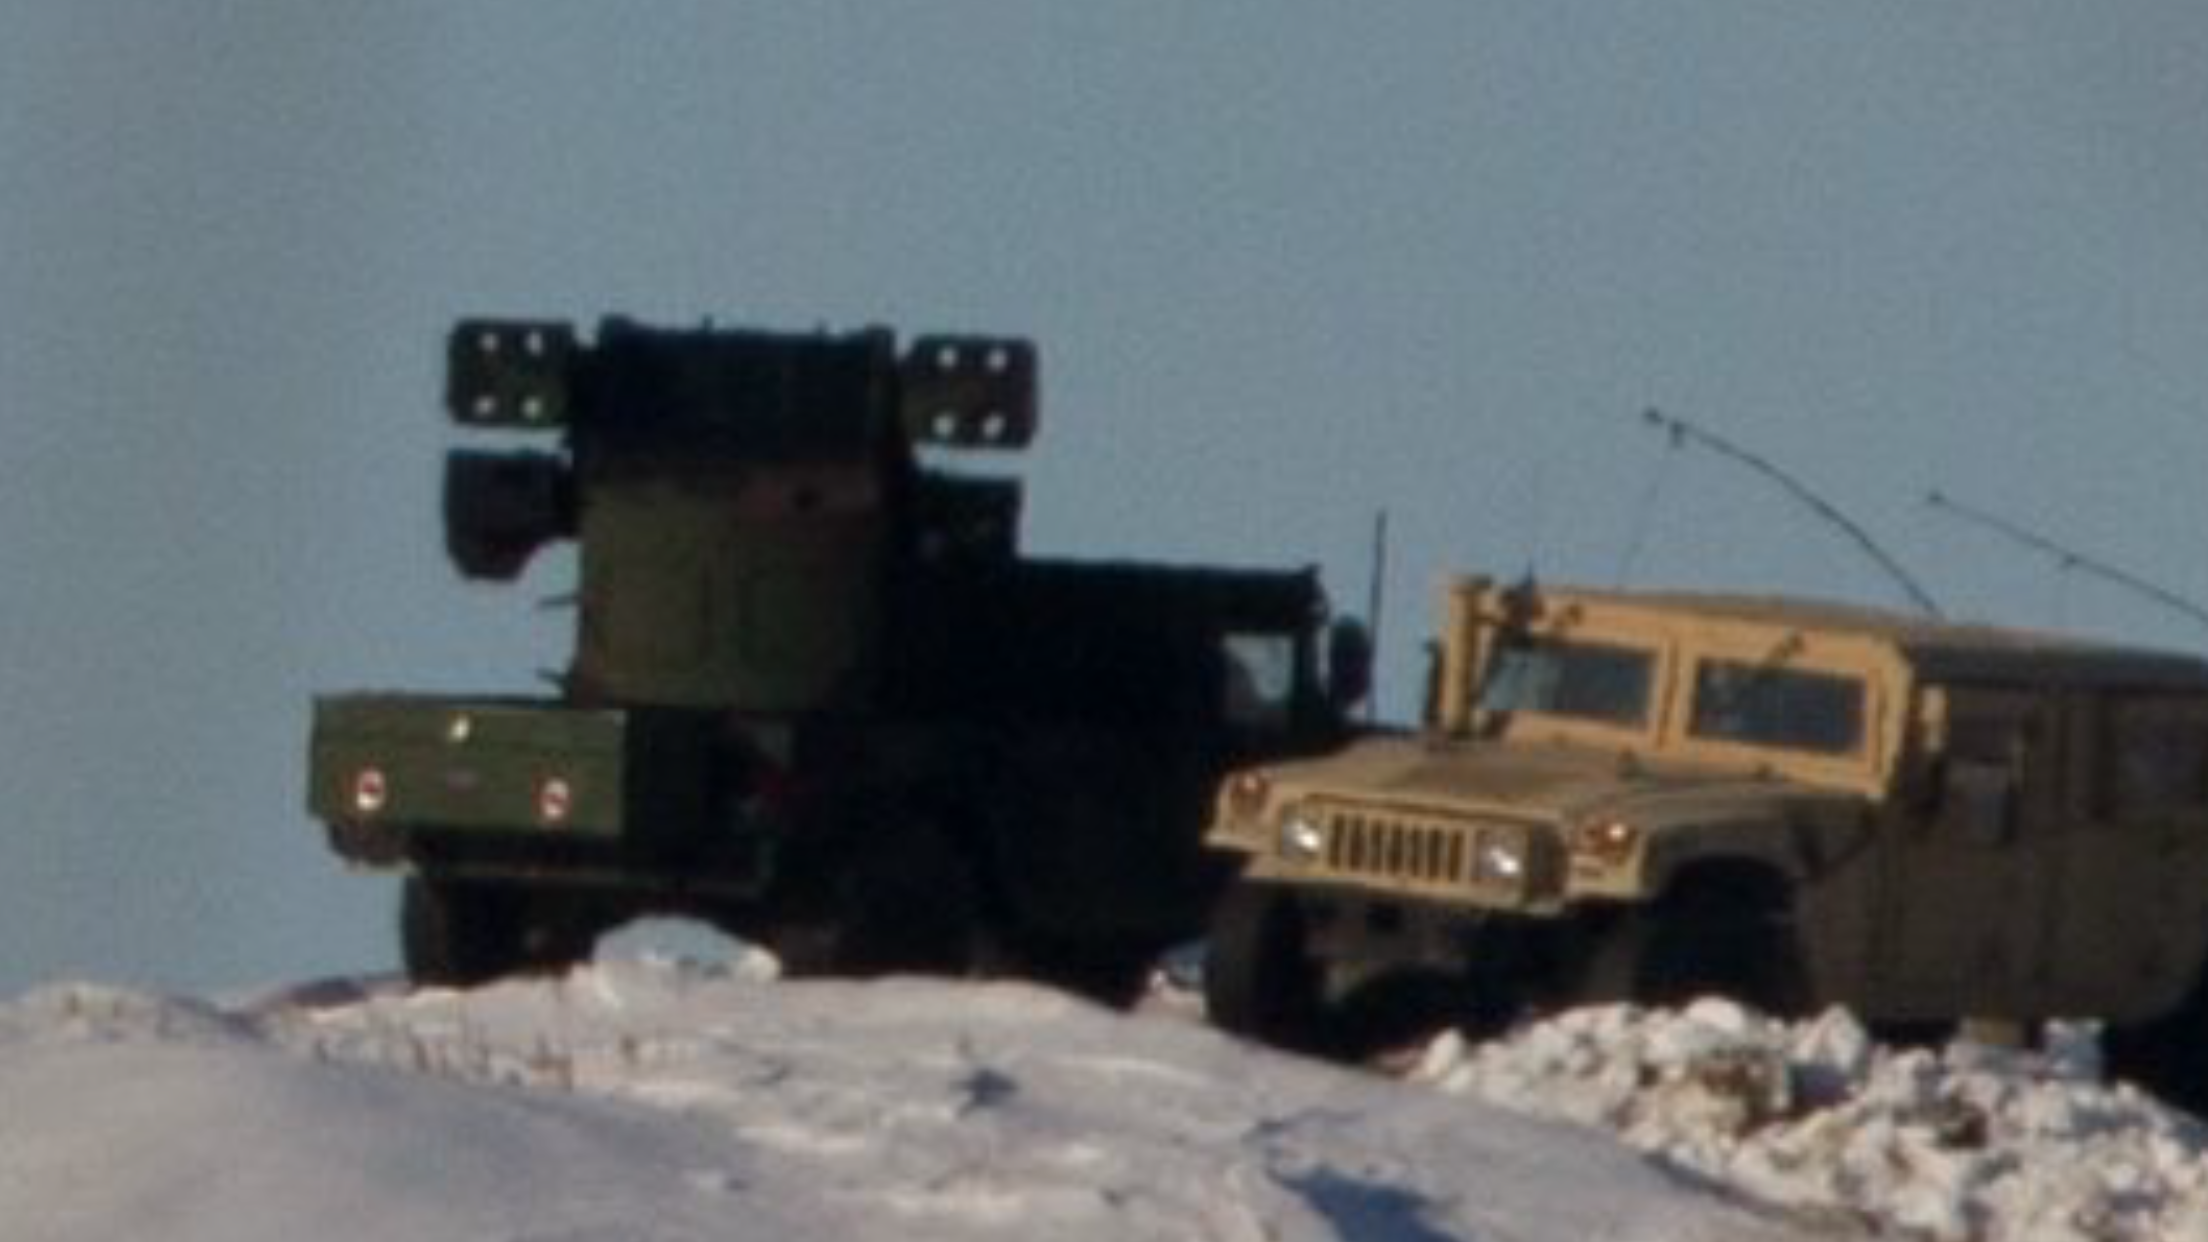 North Dakota National Guard vehicles at Standing Rock camps - photo provided by Myron Dewey